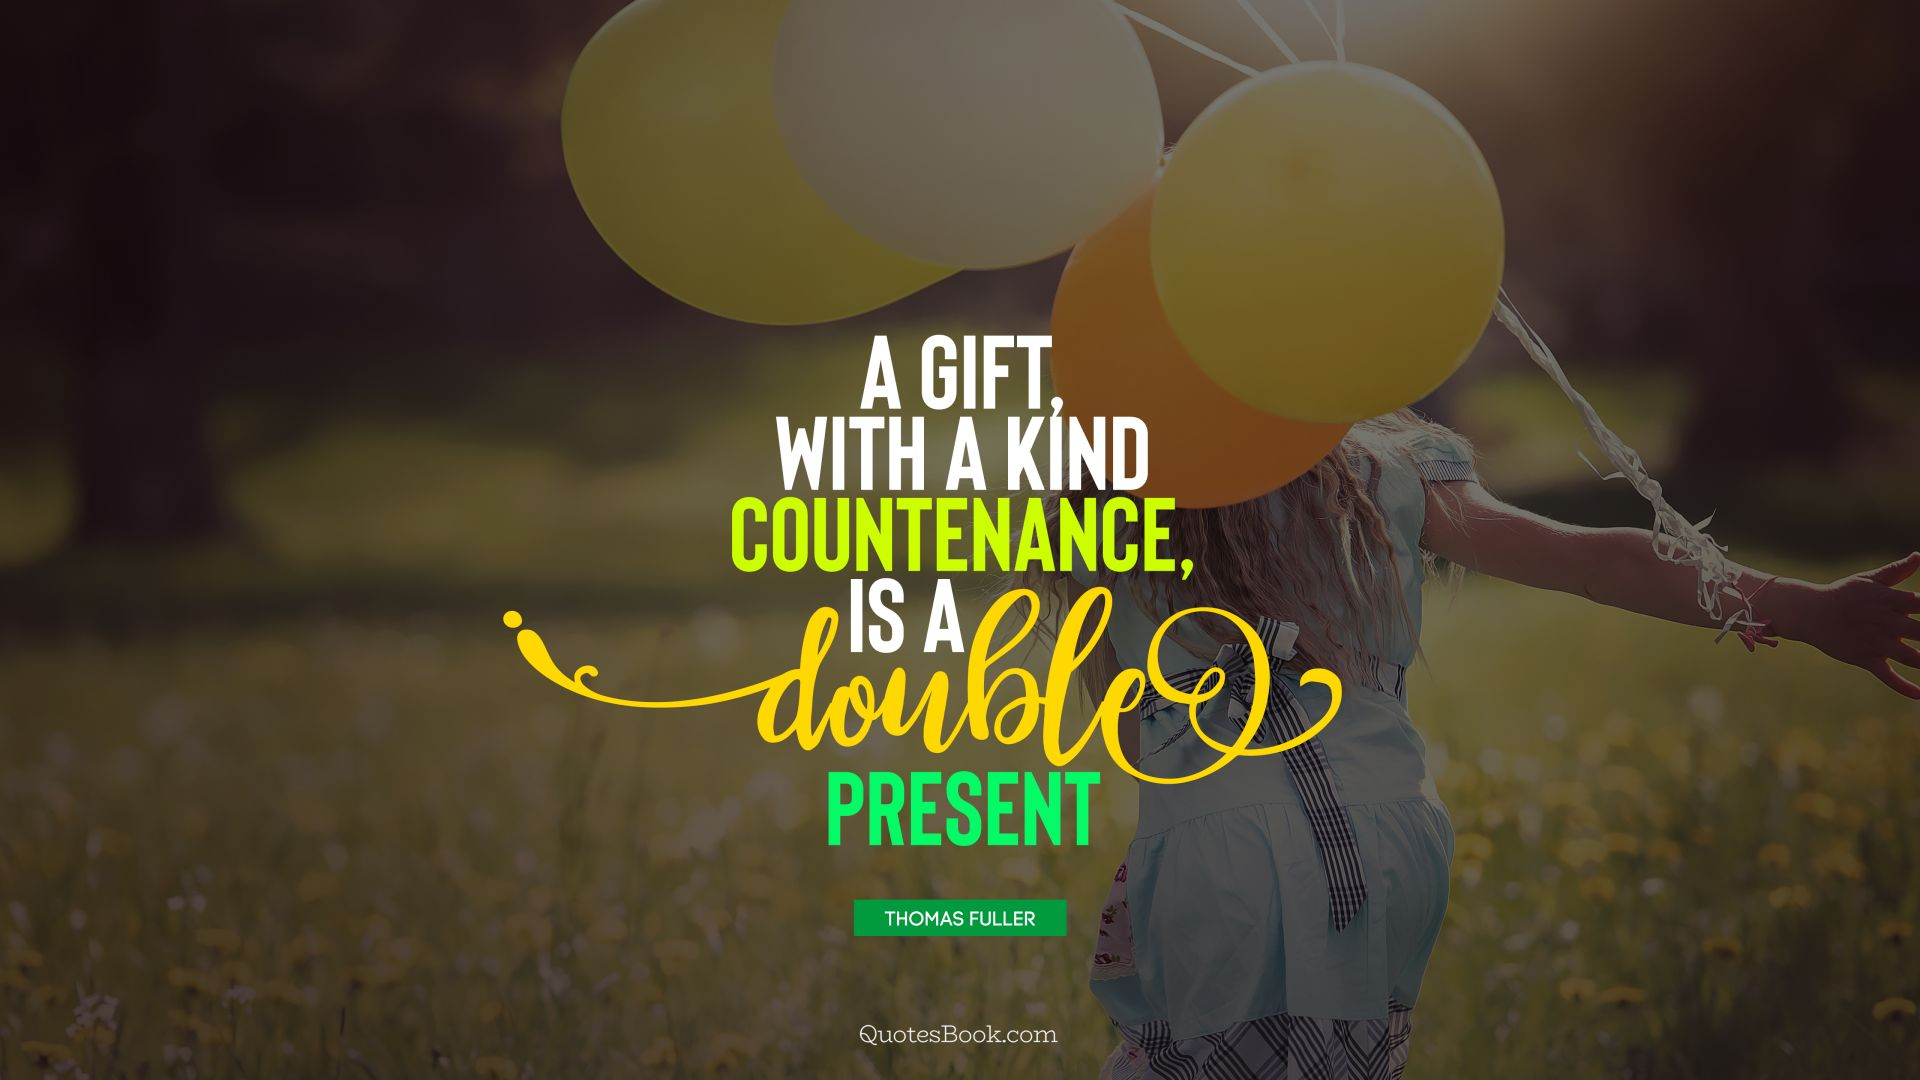 A gift, with a kind countenance, is a double present. - Quote by Thomas Fuller